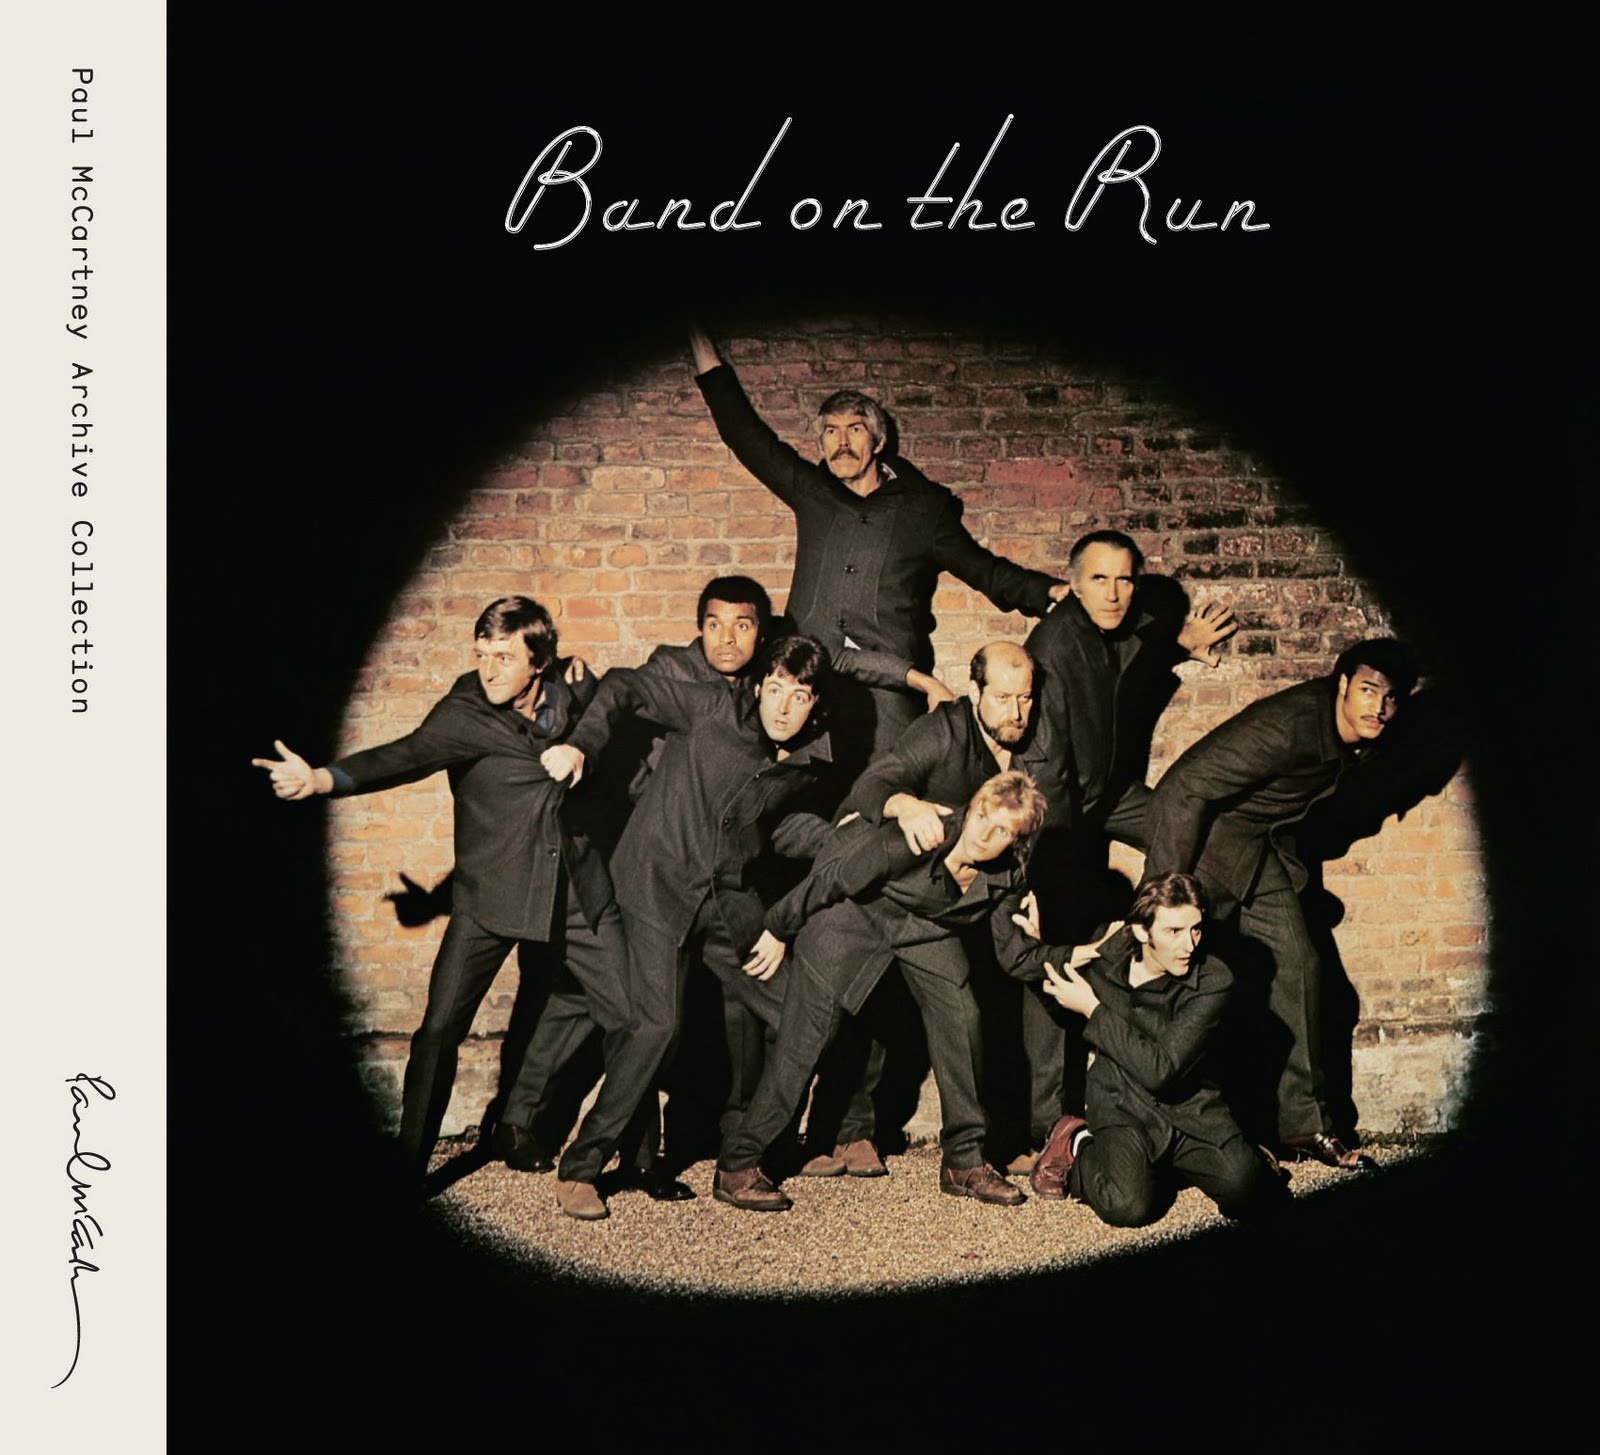 Paul McCartney & Wings – Band On The Run (2010 Reissue)